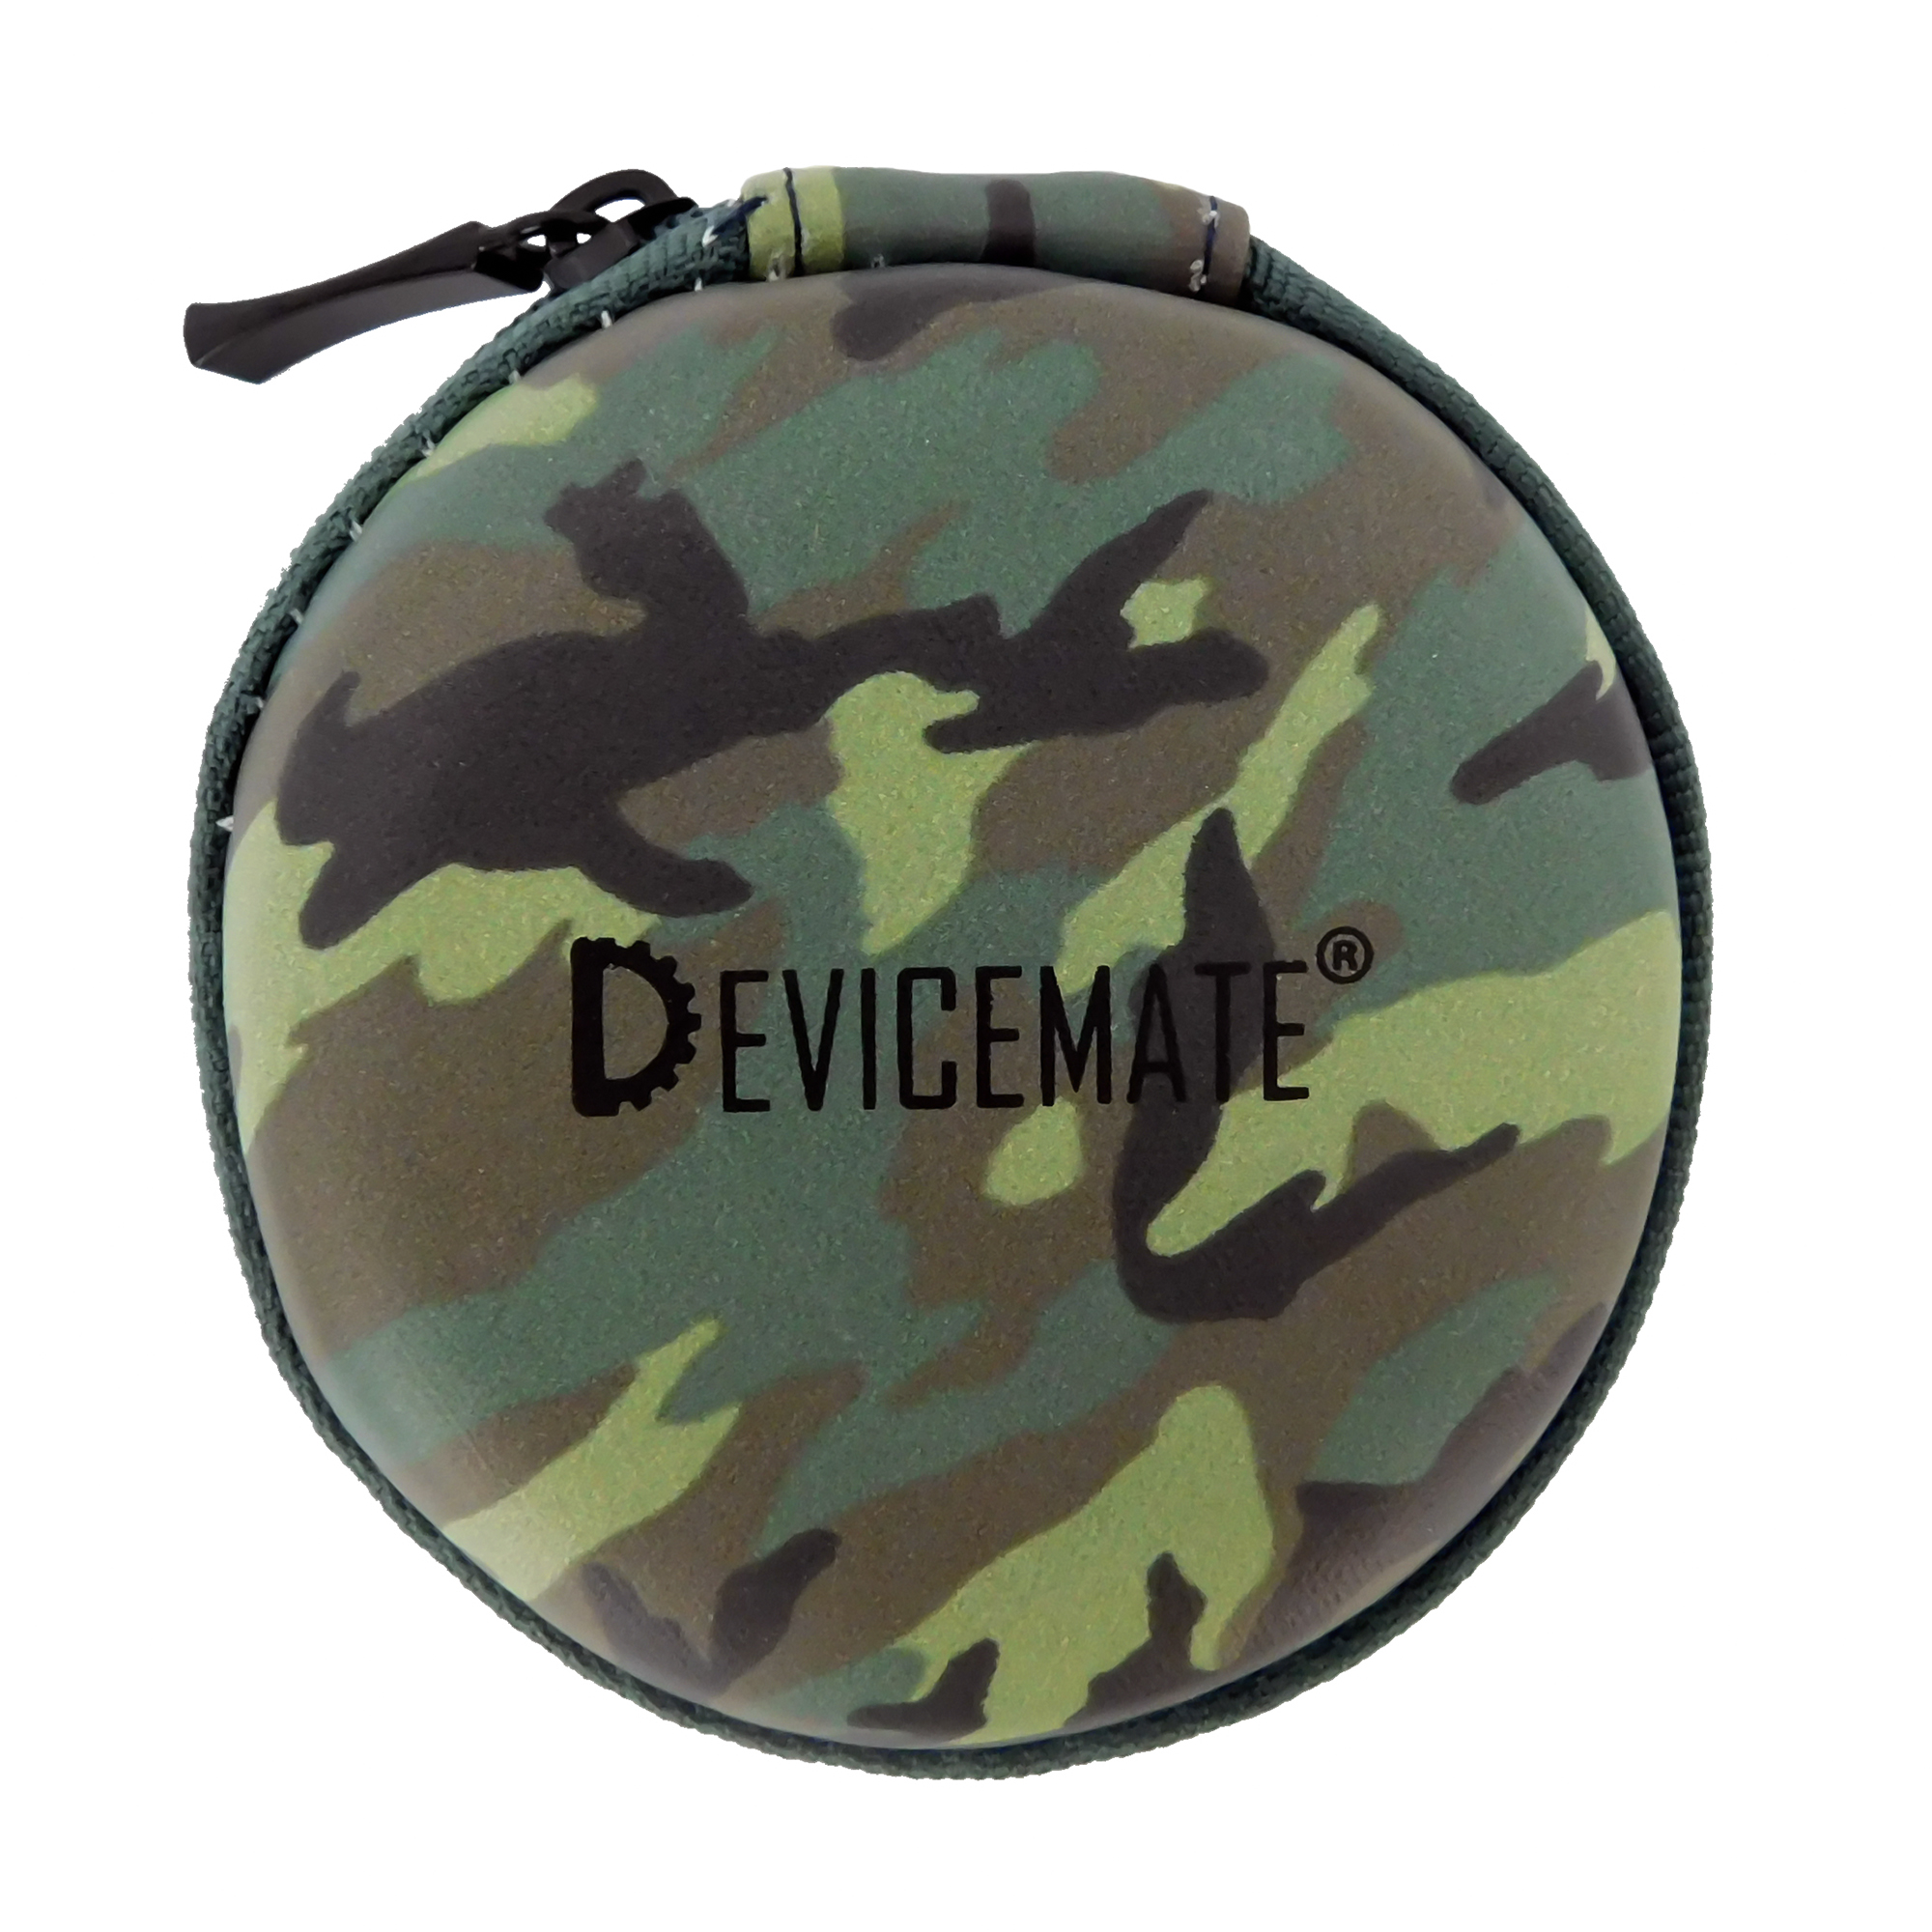 Devicemate DSC 375-GCM Earphones Accessory Carrying Case